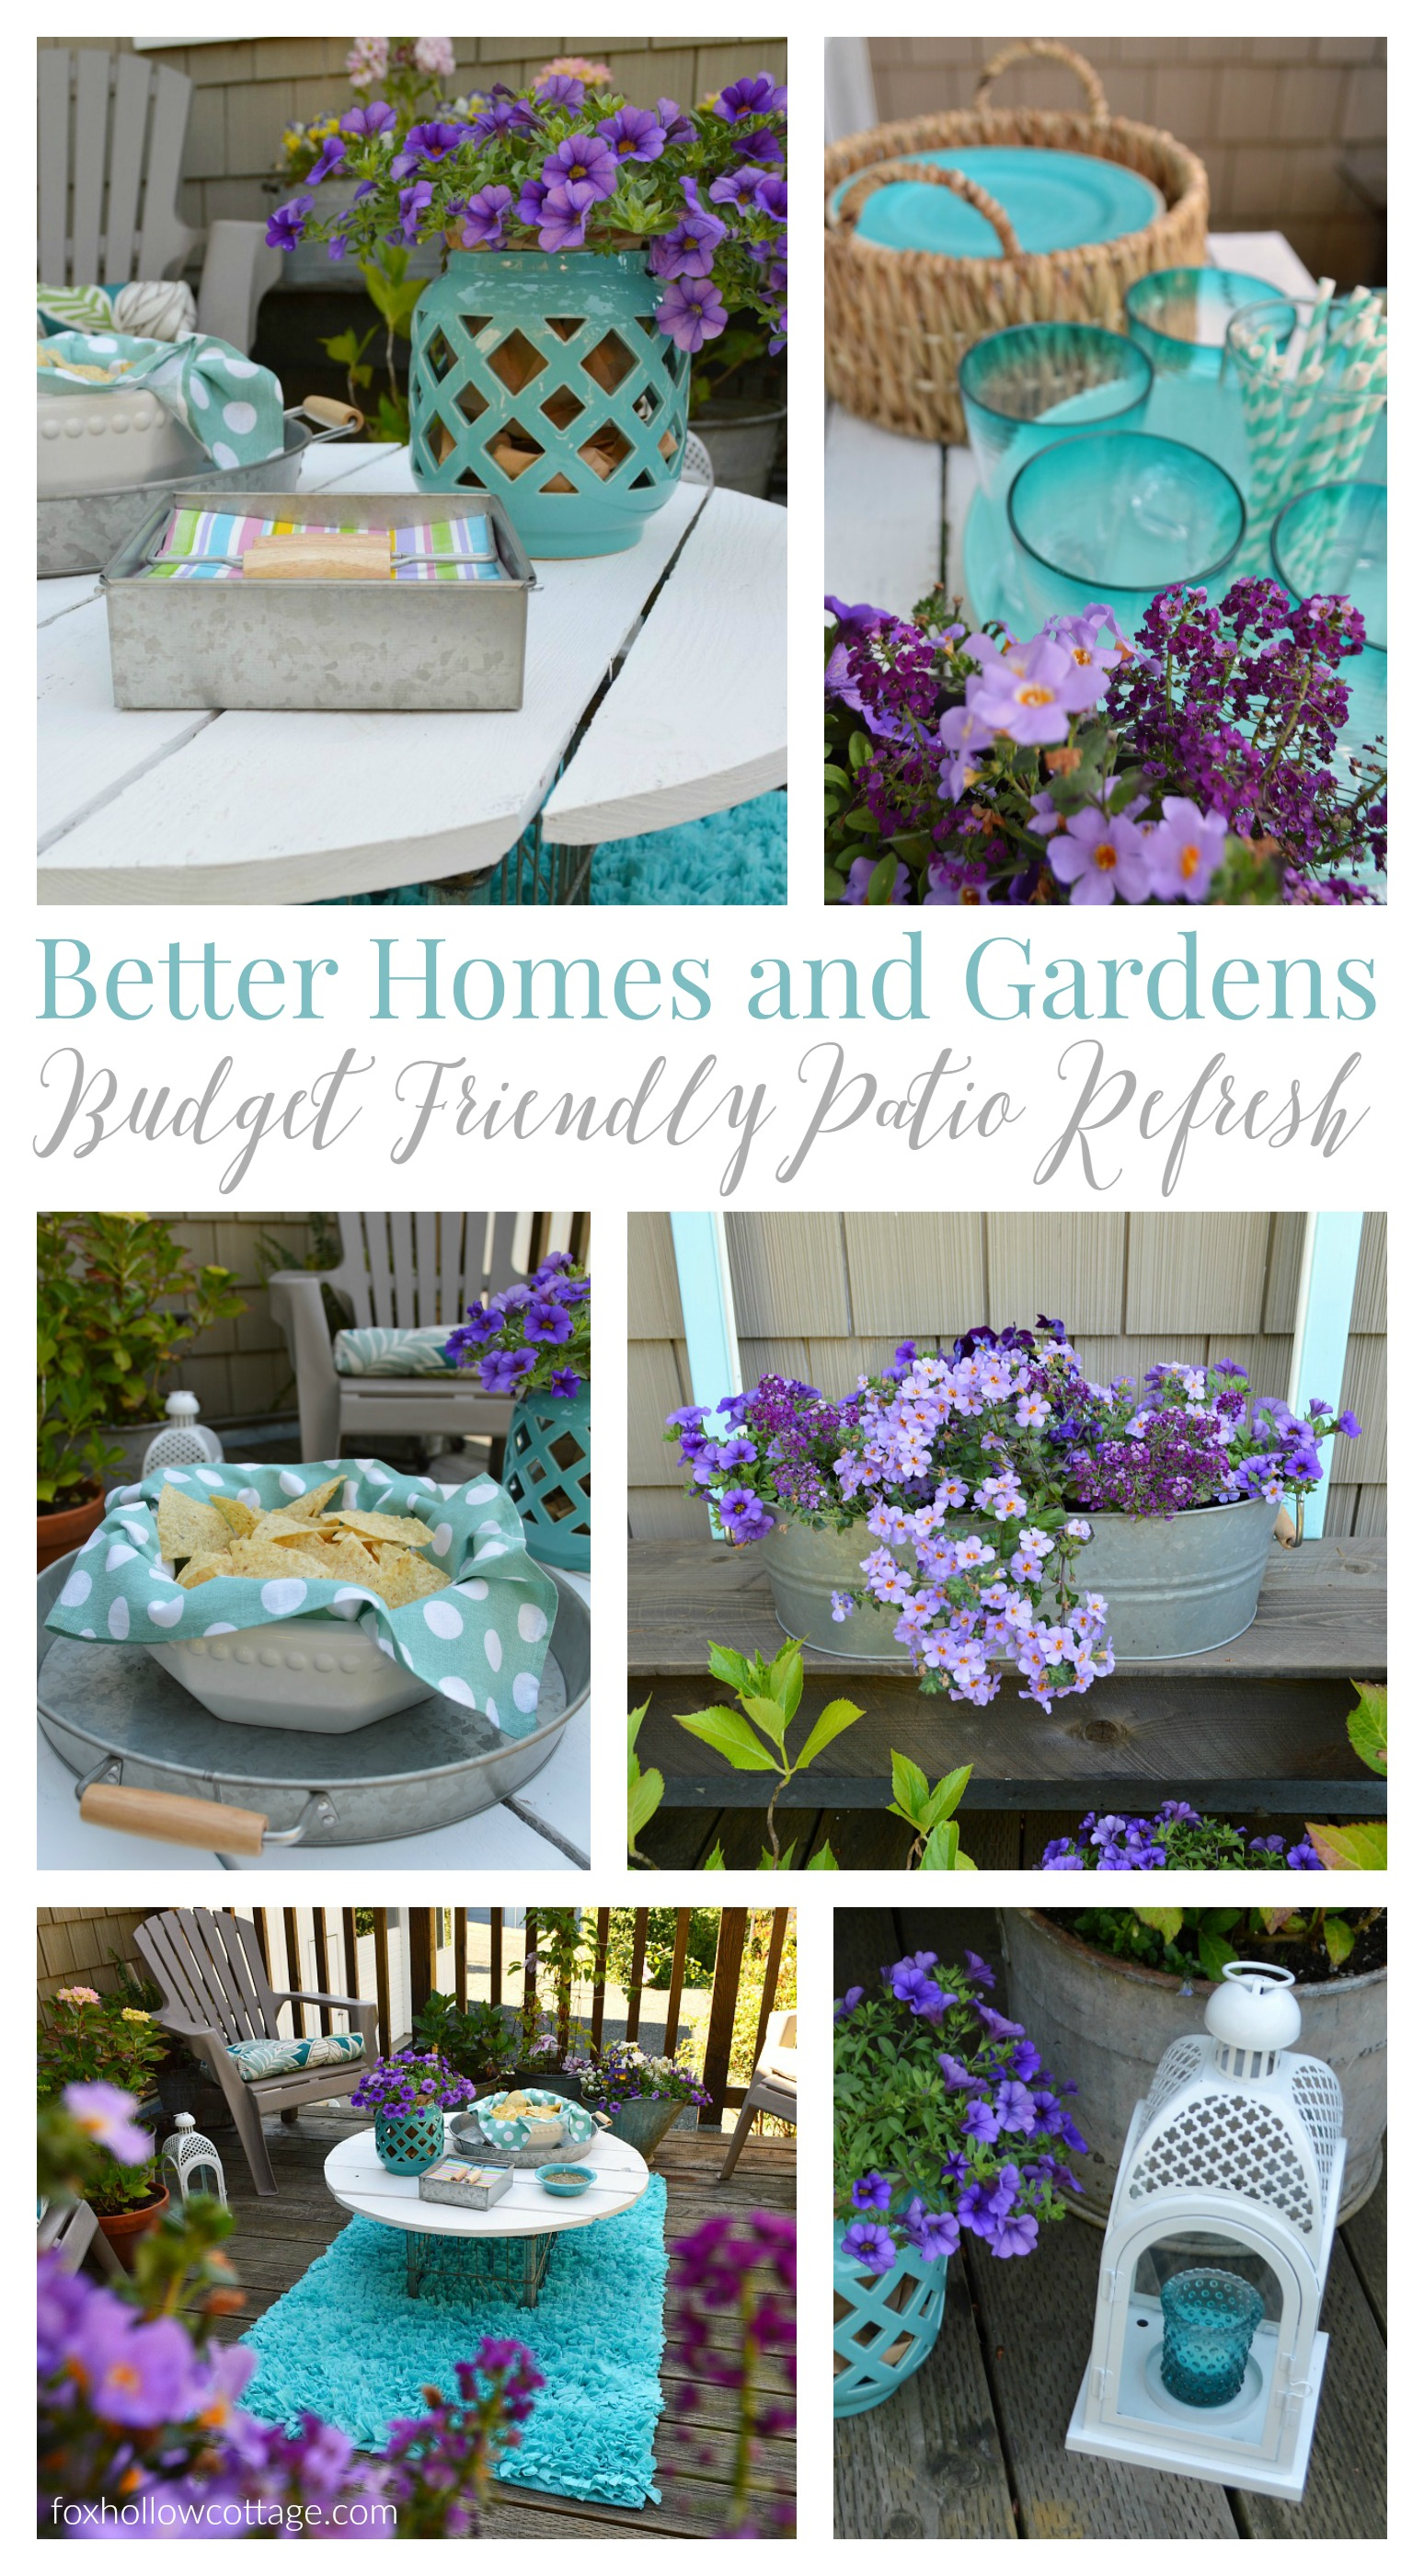 Budget friendly patio refresh plus a double giveaway Better homes and gardens garden ideas